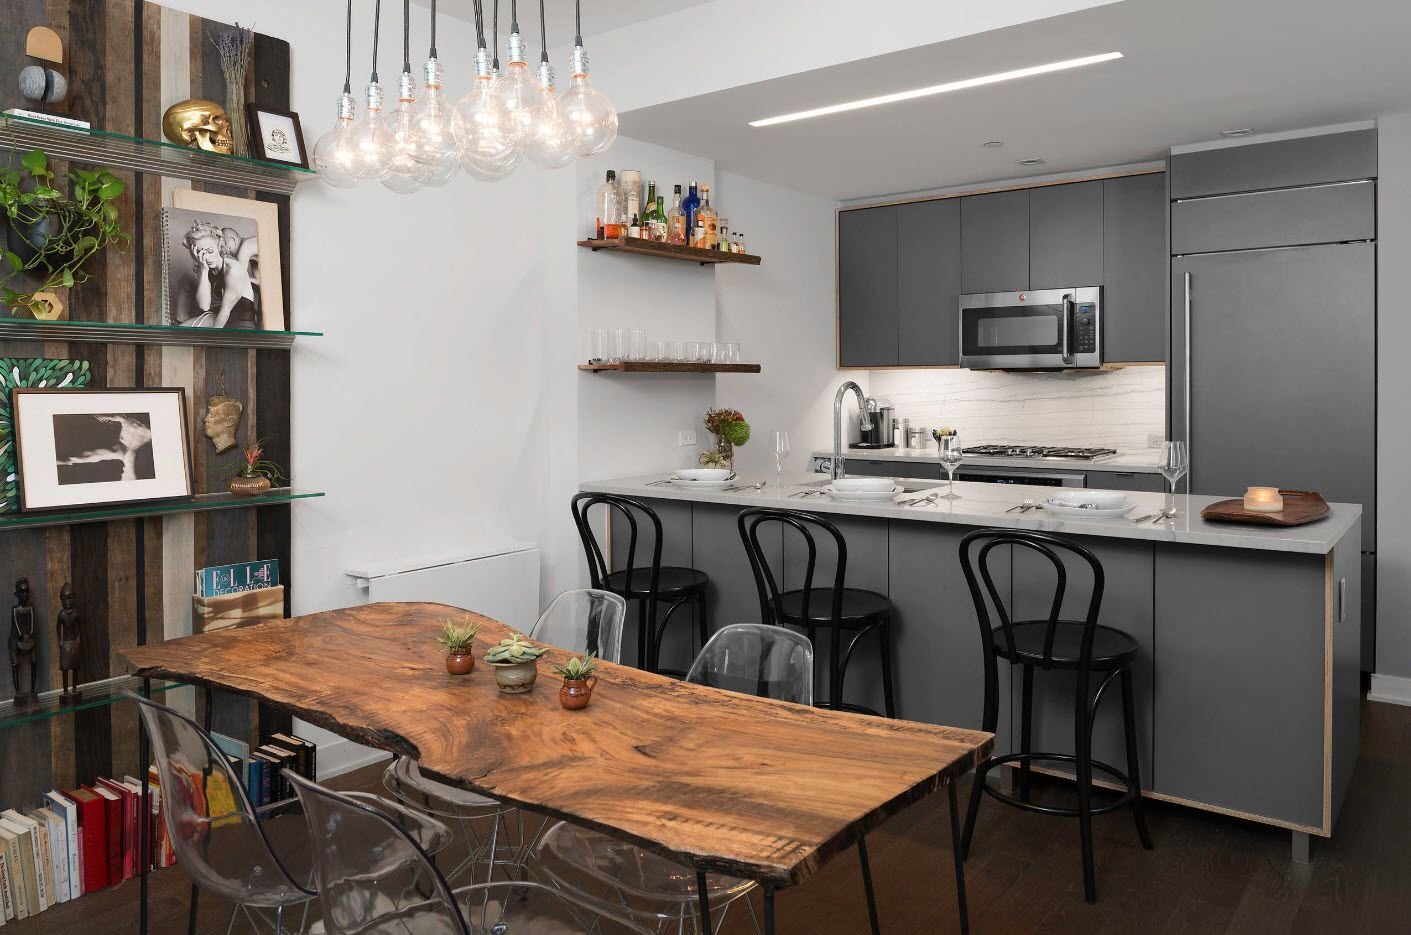 Kitchen wiiden table and linear layout and large raw wooden table in the center